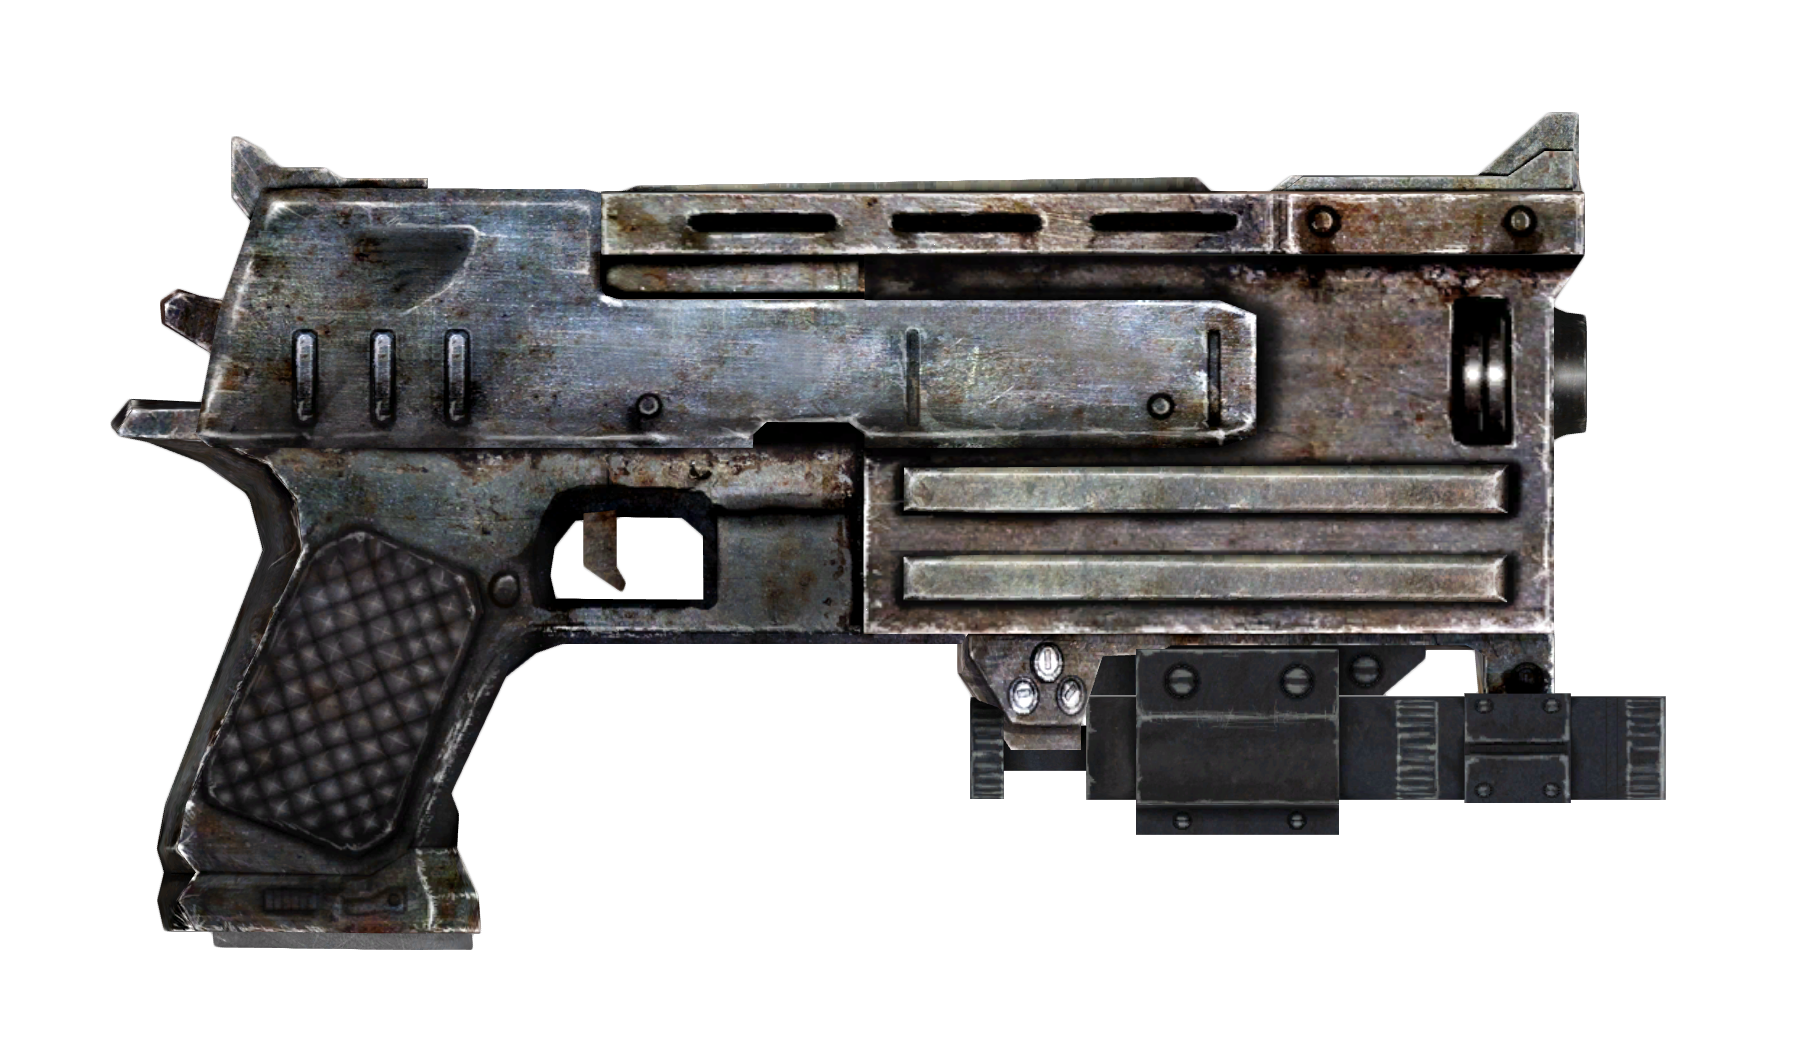 Laser pistol png. Image mm with sight